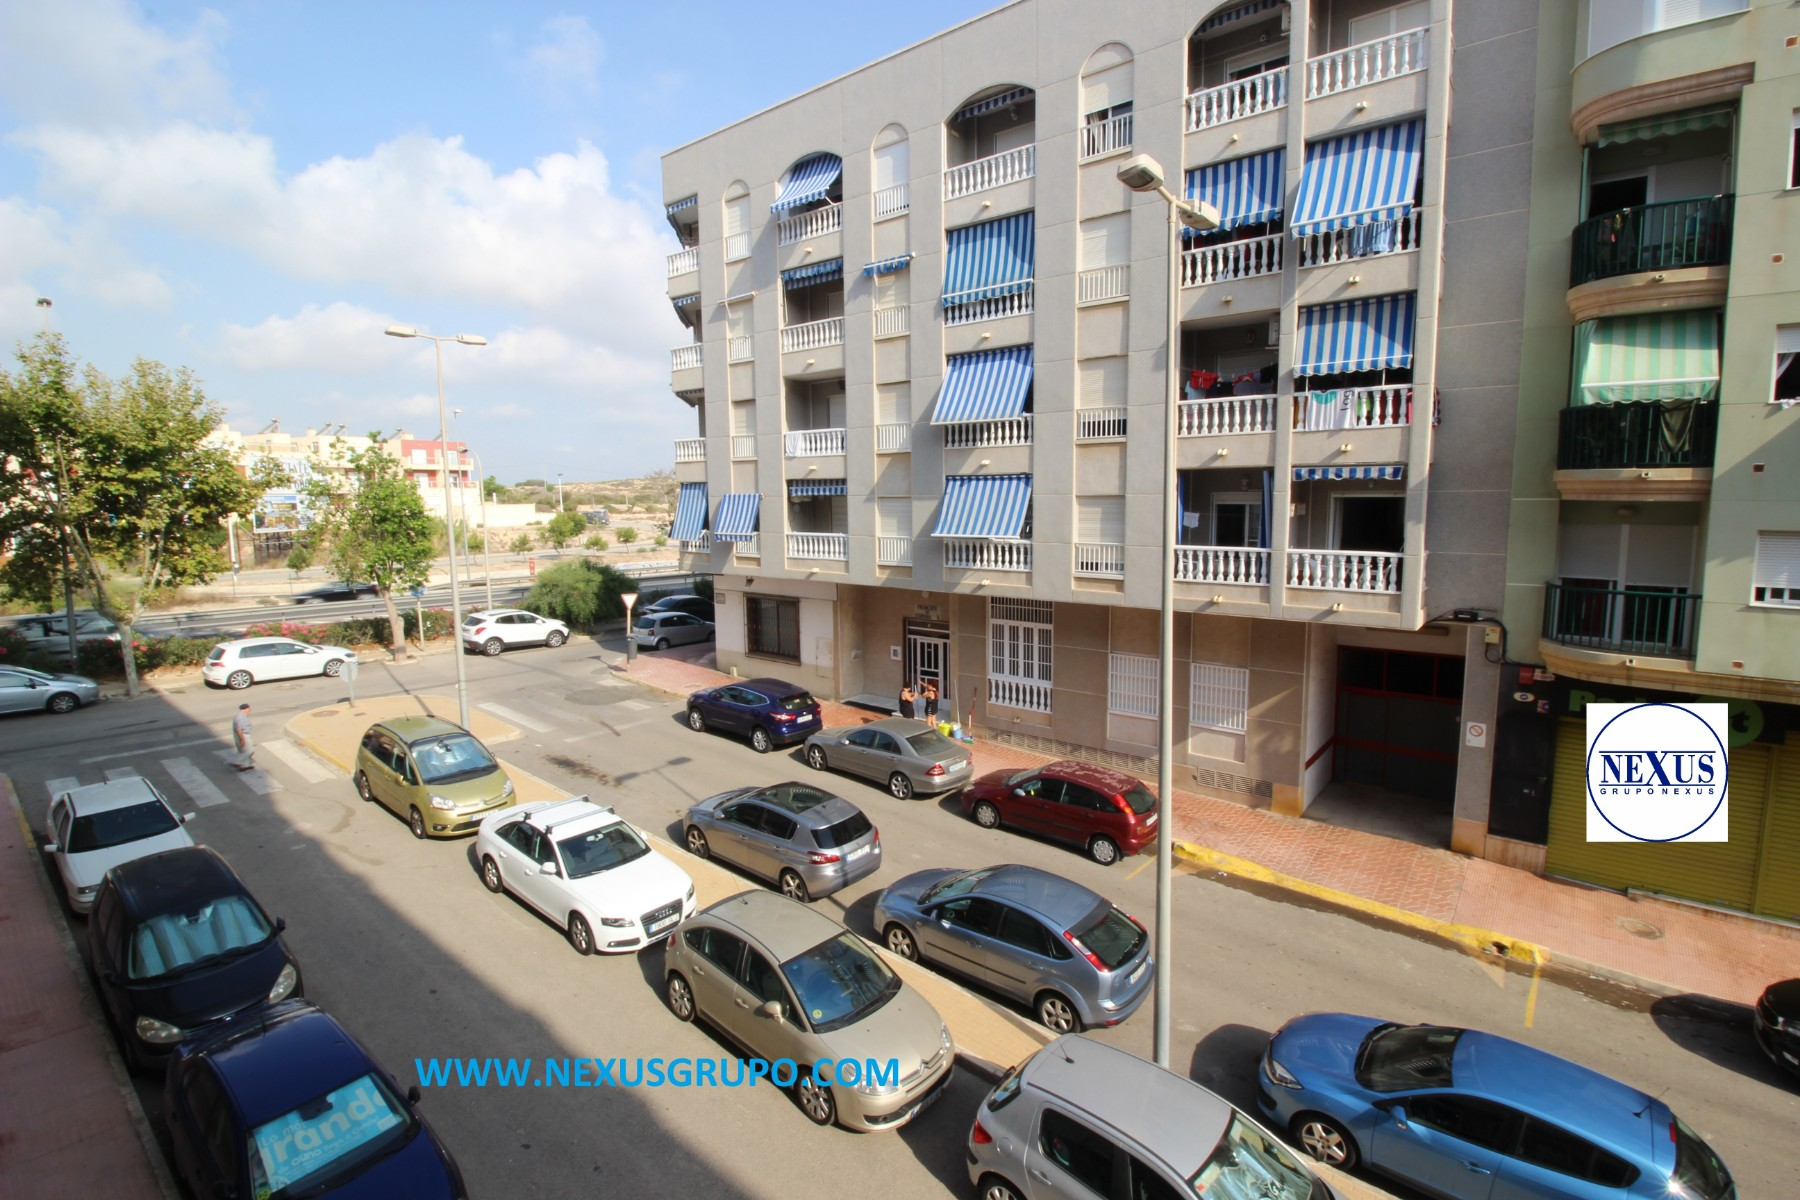 ​Real Estate Group Nexus, Sells excellent and very spacious apartment in Nexus Grupo